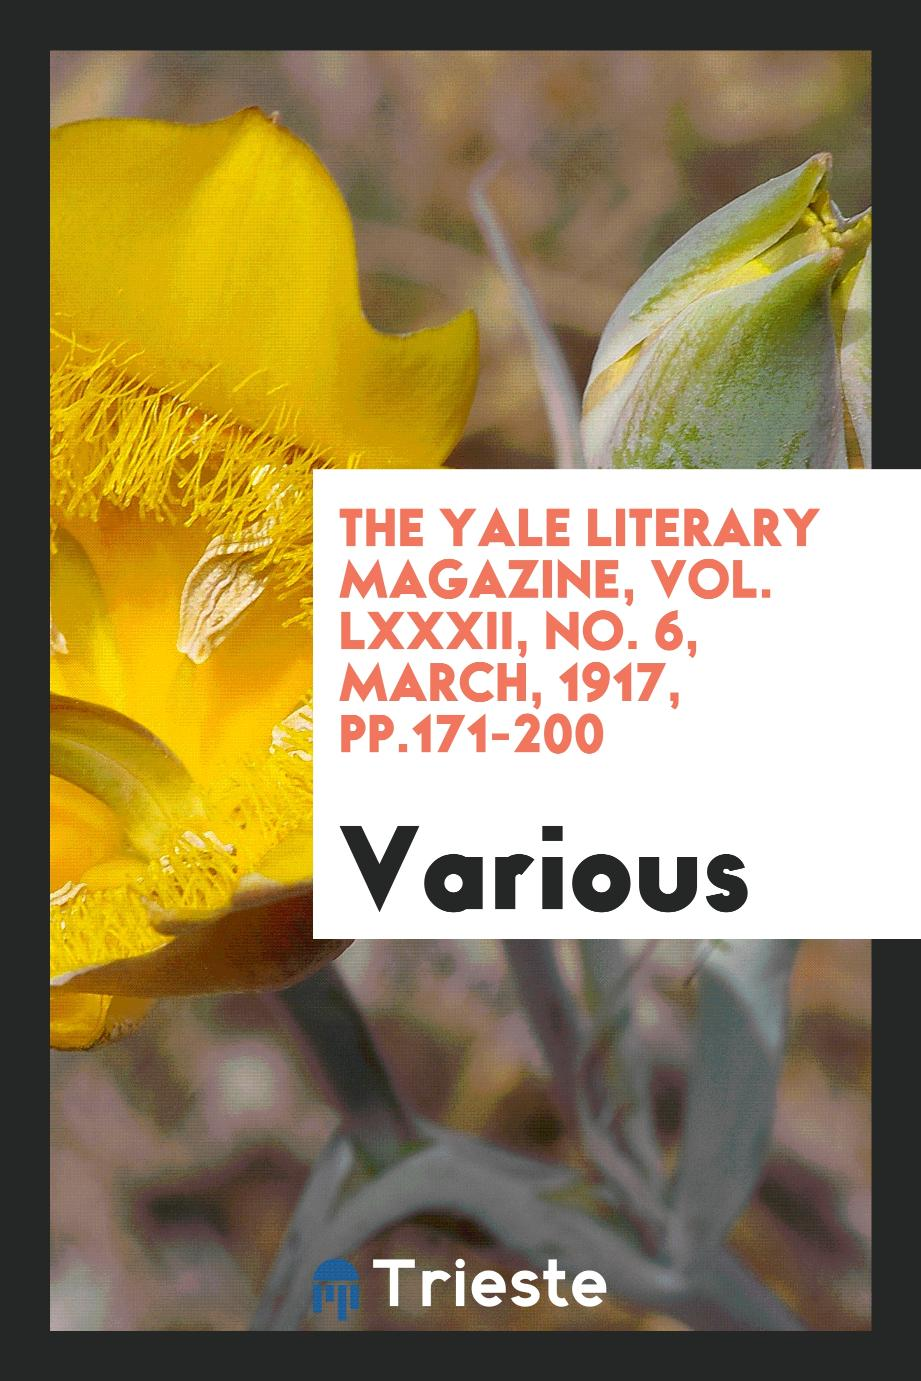 The Yale literary magazine, Vol. LXXXII, No. 6, march, 1917, pp.171-200